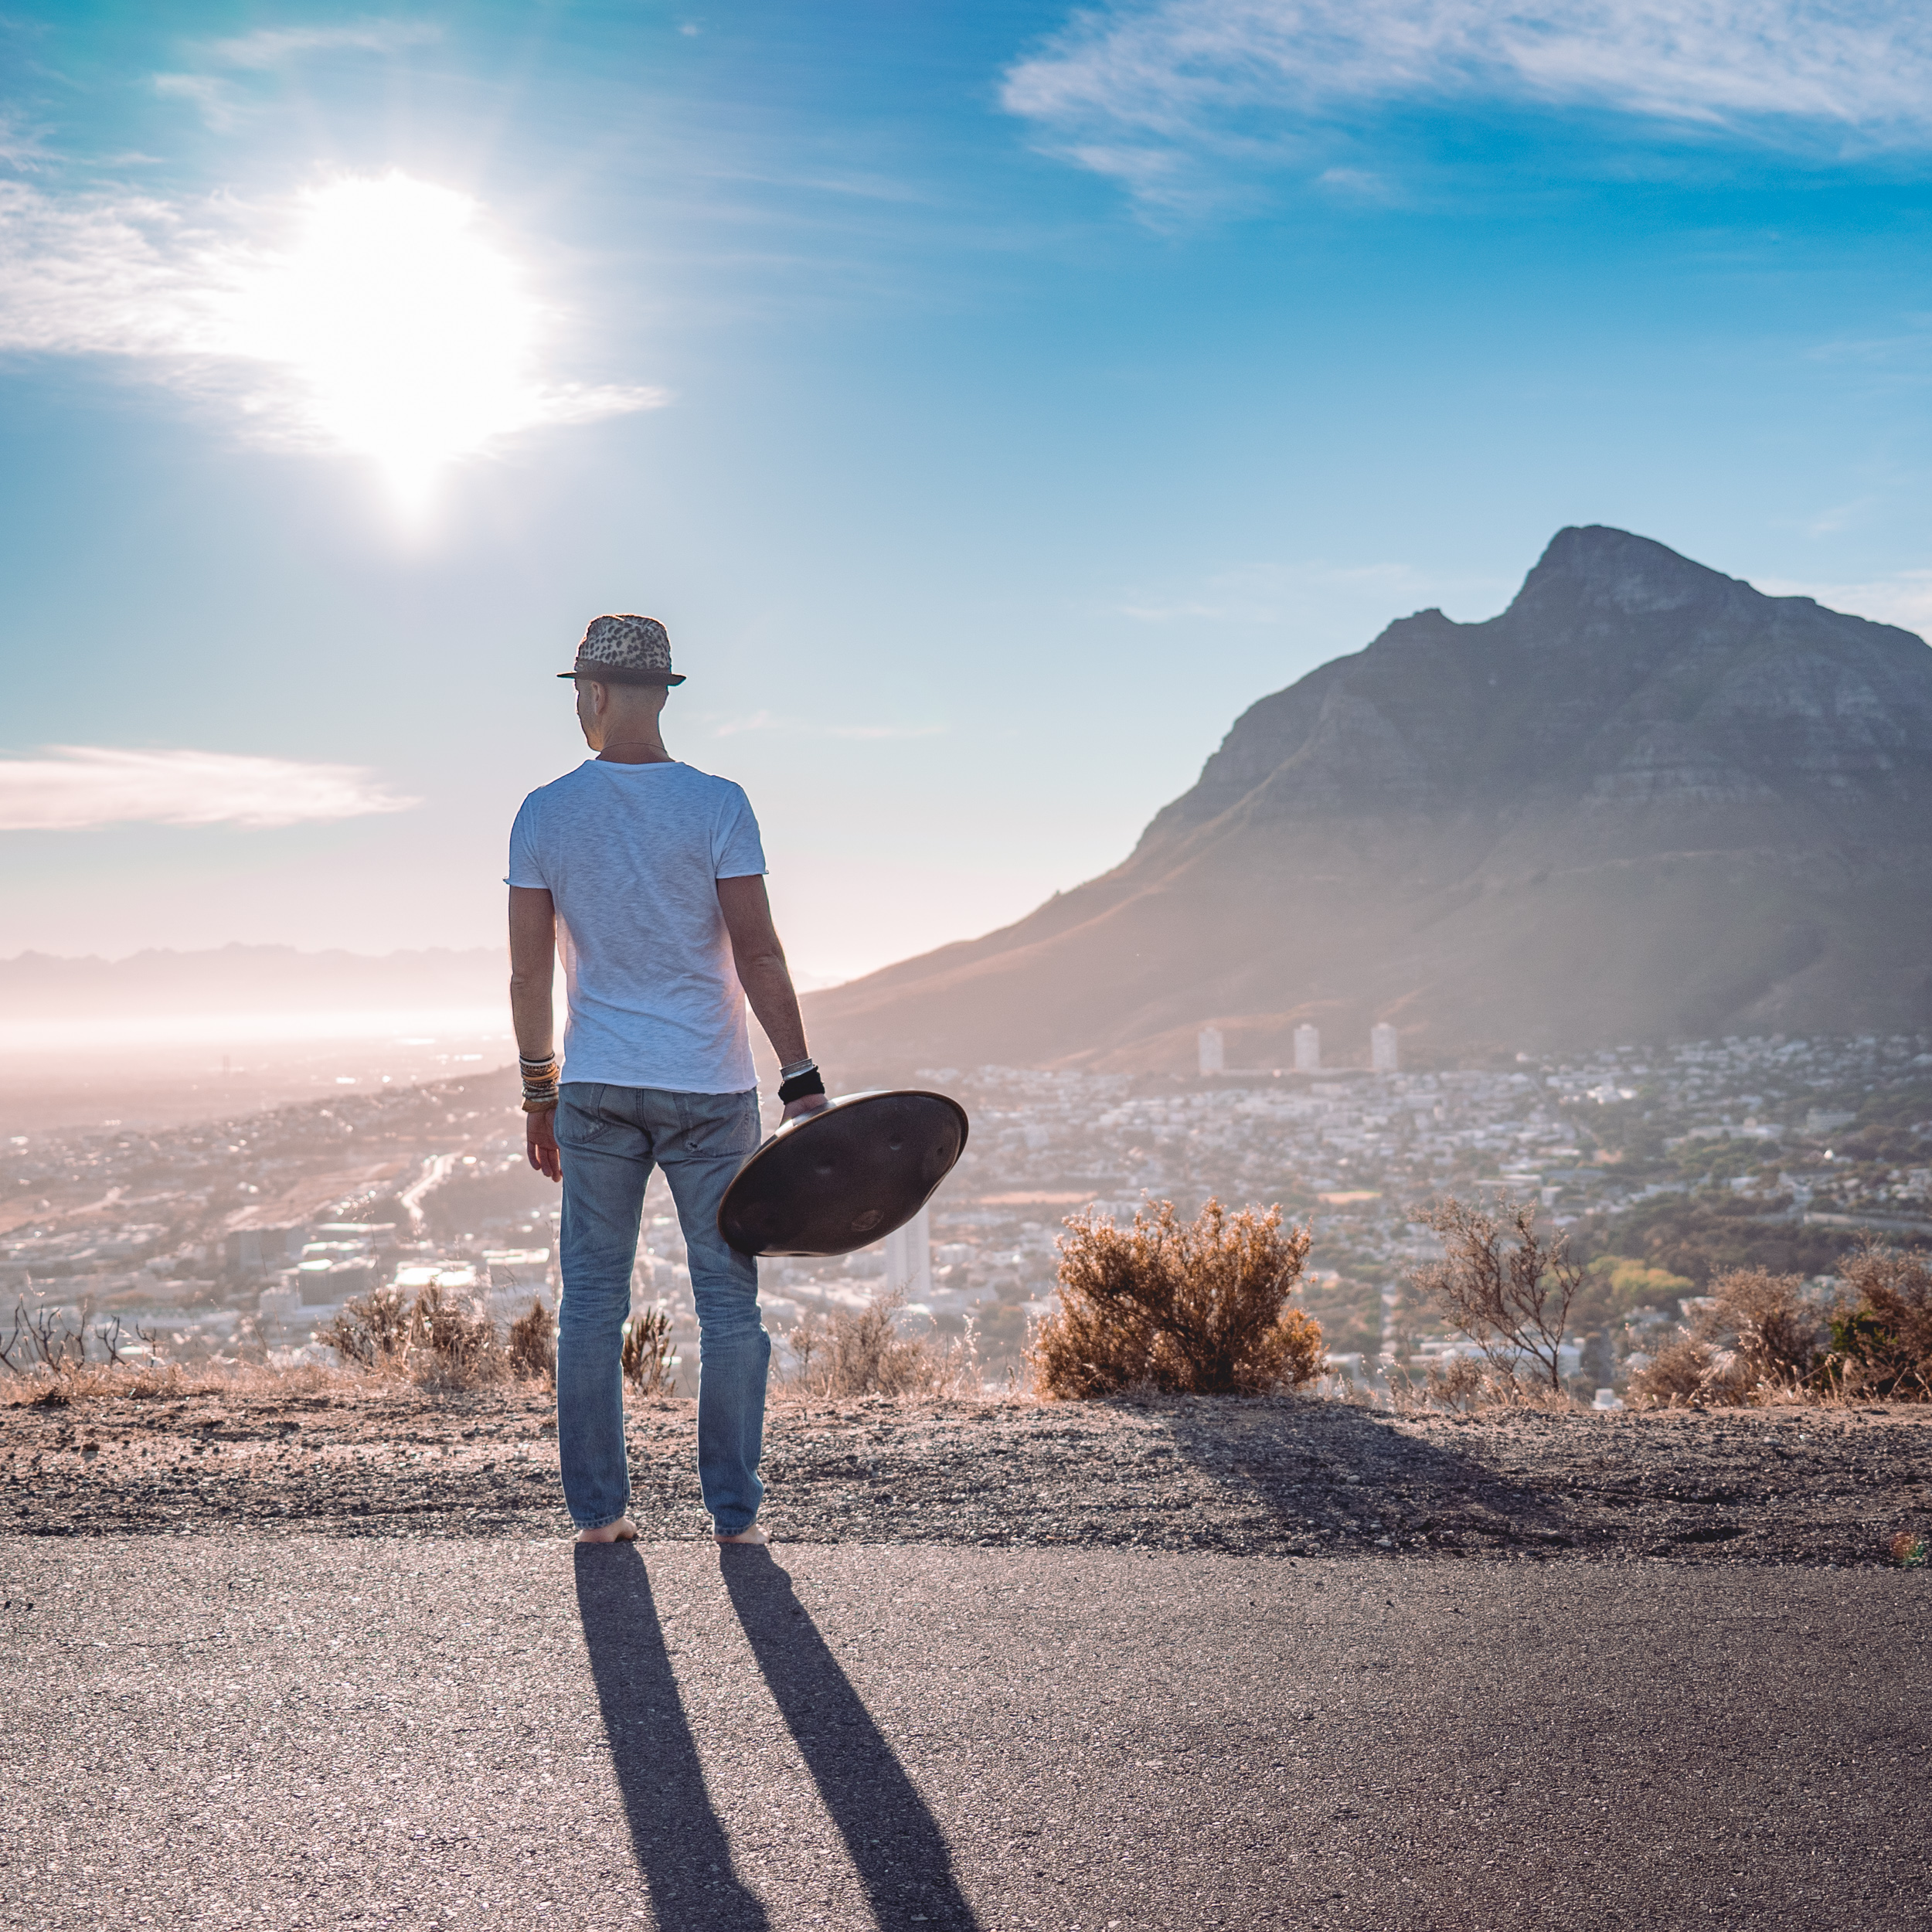 Marco Selvaggio - Signal Hill, Lions head, Table Mountain, Cape Town South Africa - Image by Ken Treloar Photography 2019-5.jpg